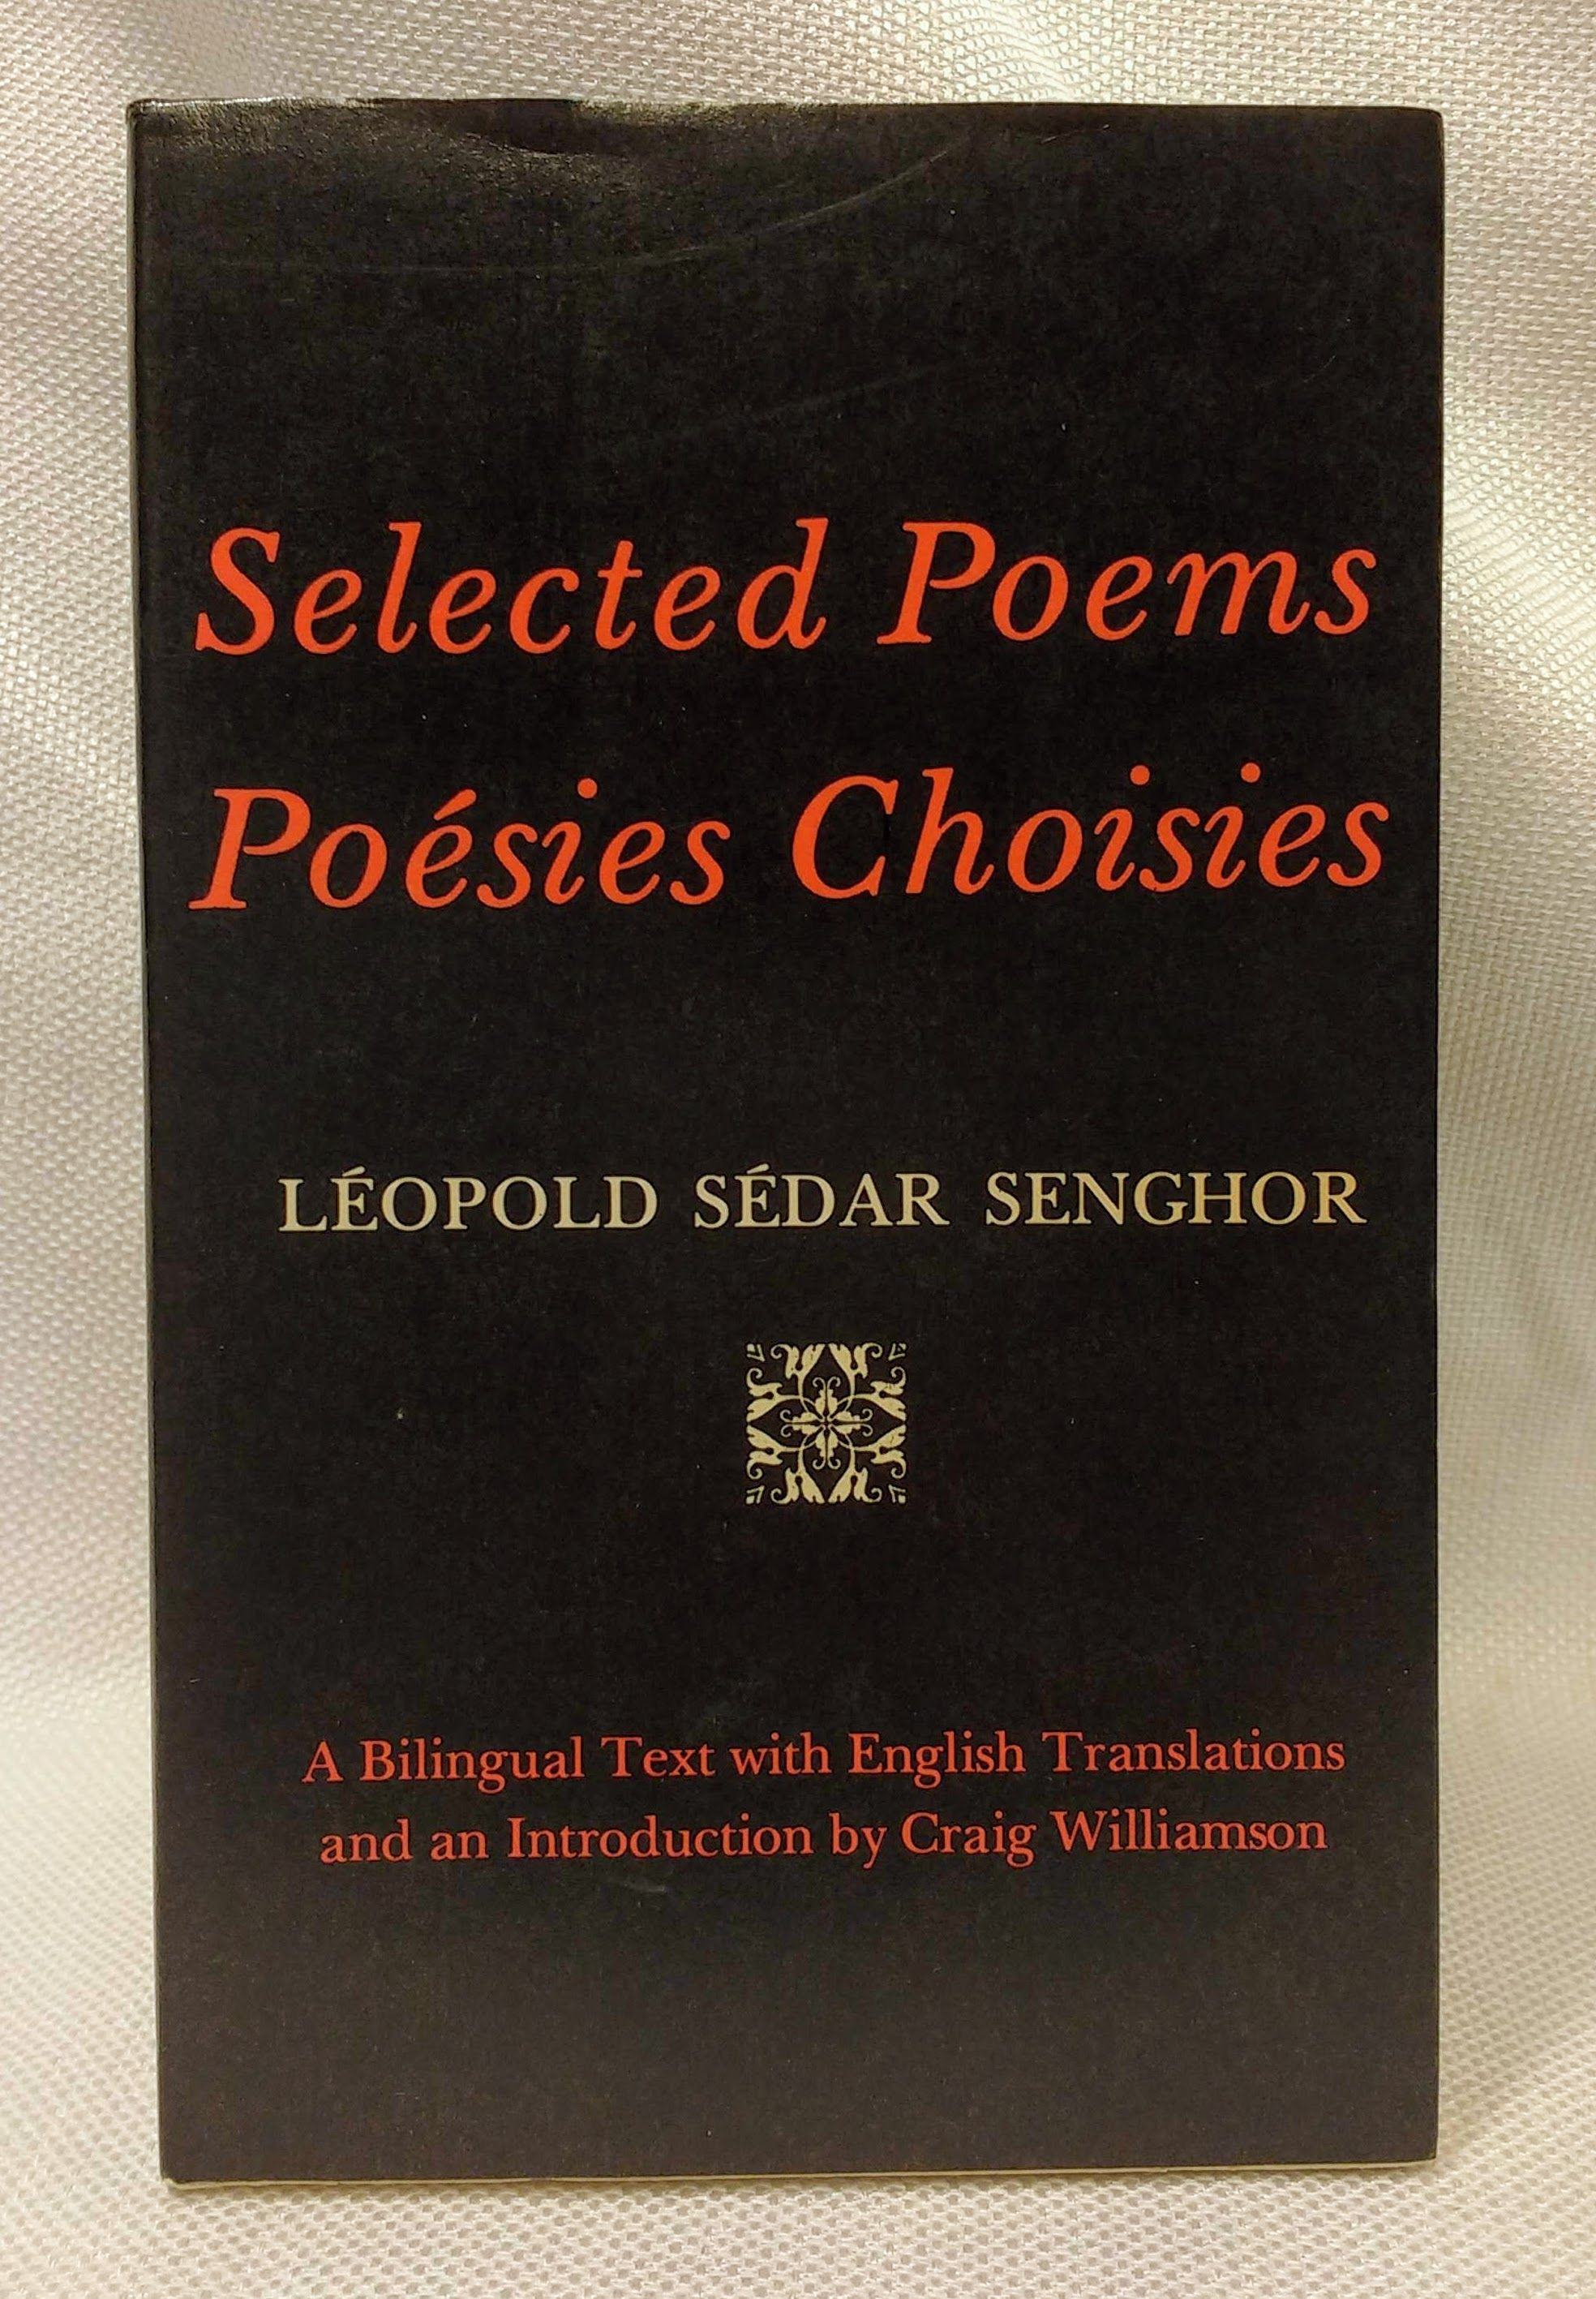 Selected Poems / Poésies Choisies, Senghor, Le?opold Se?dar